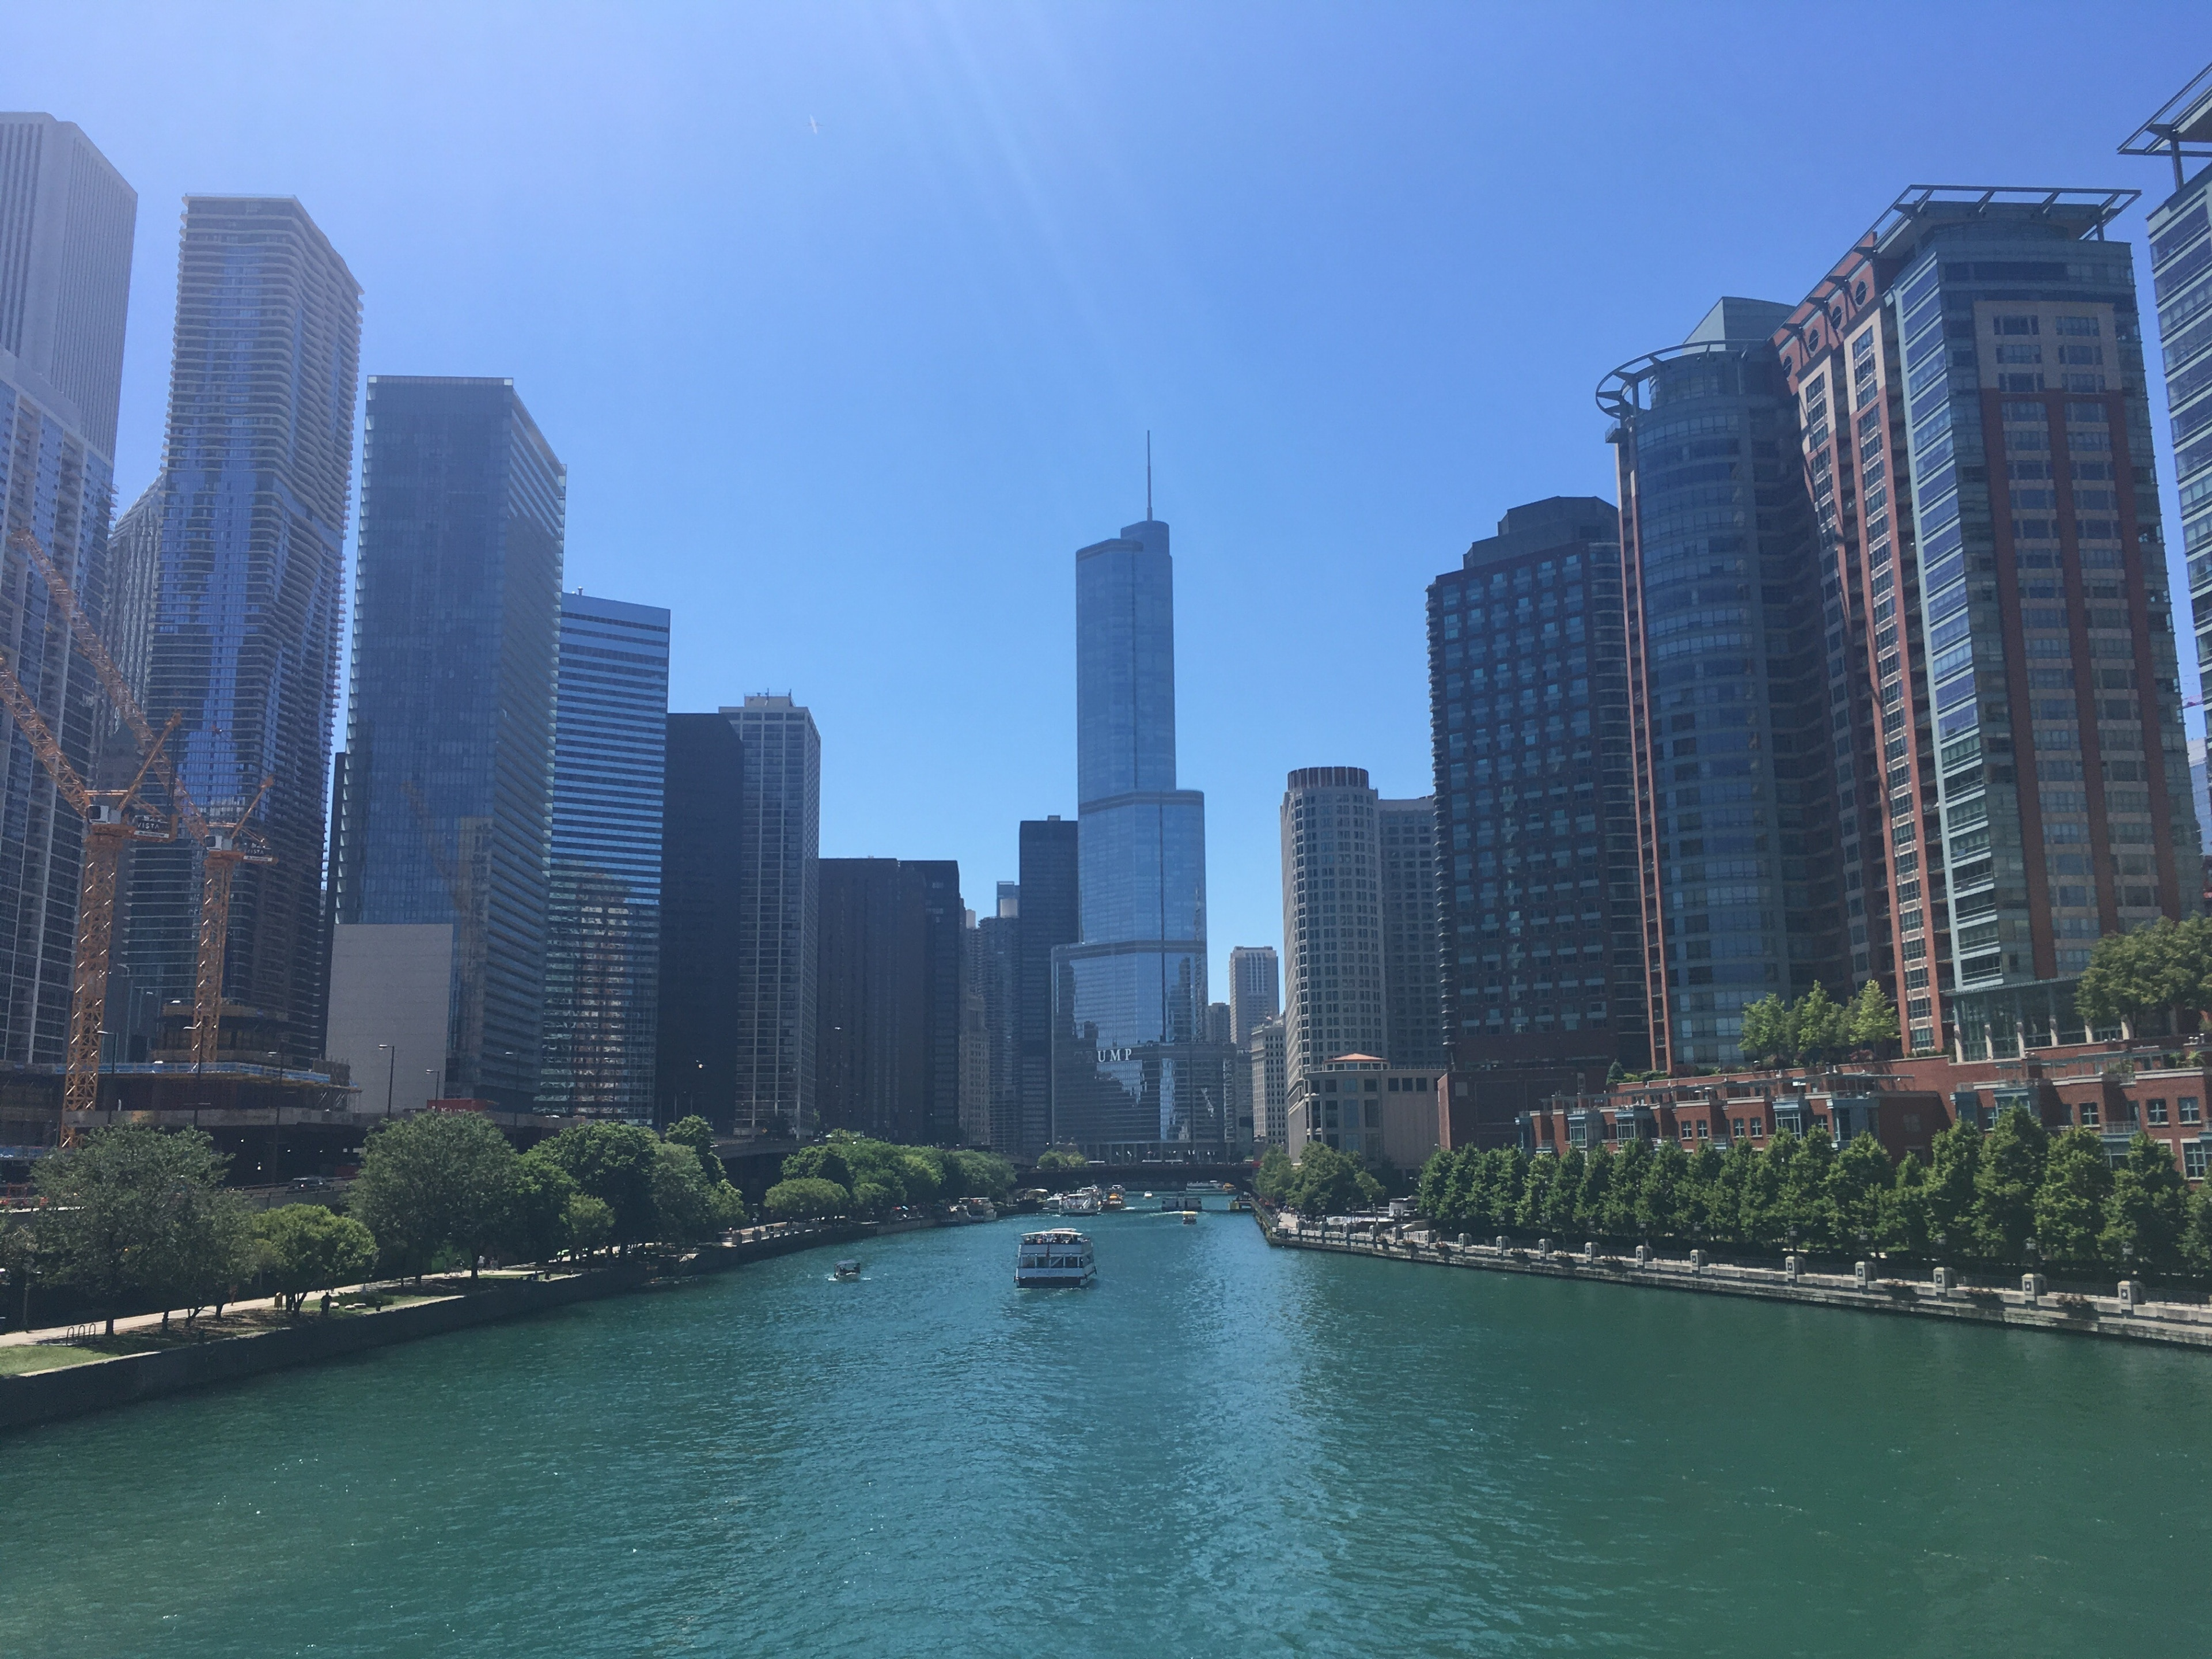 Near East Side, Chicago, Illinois, United States of America